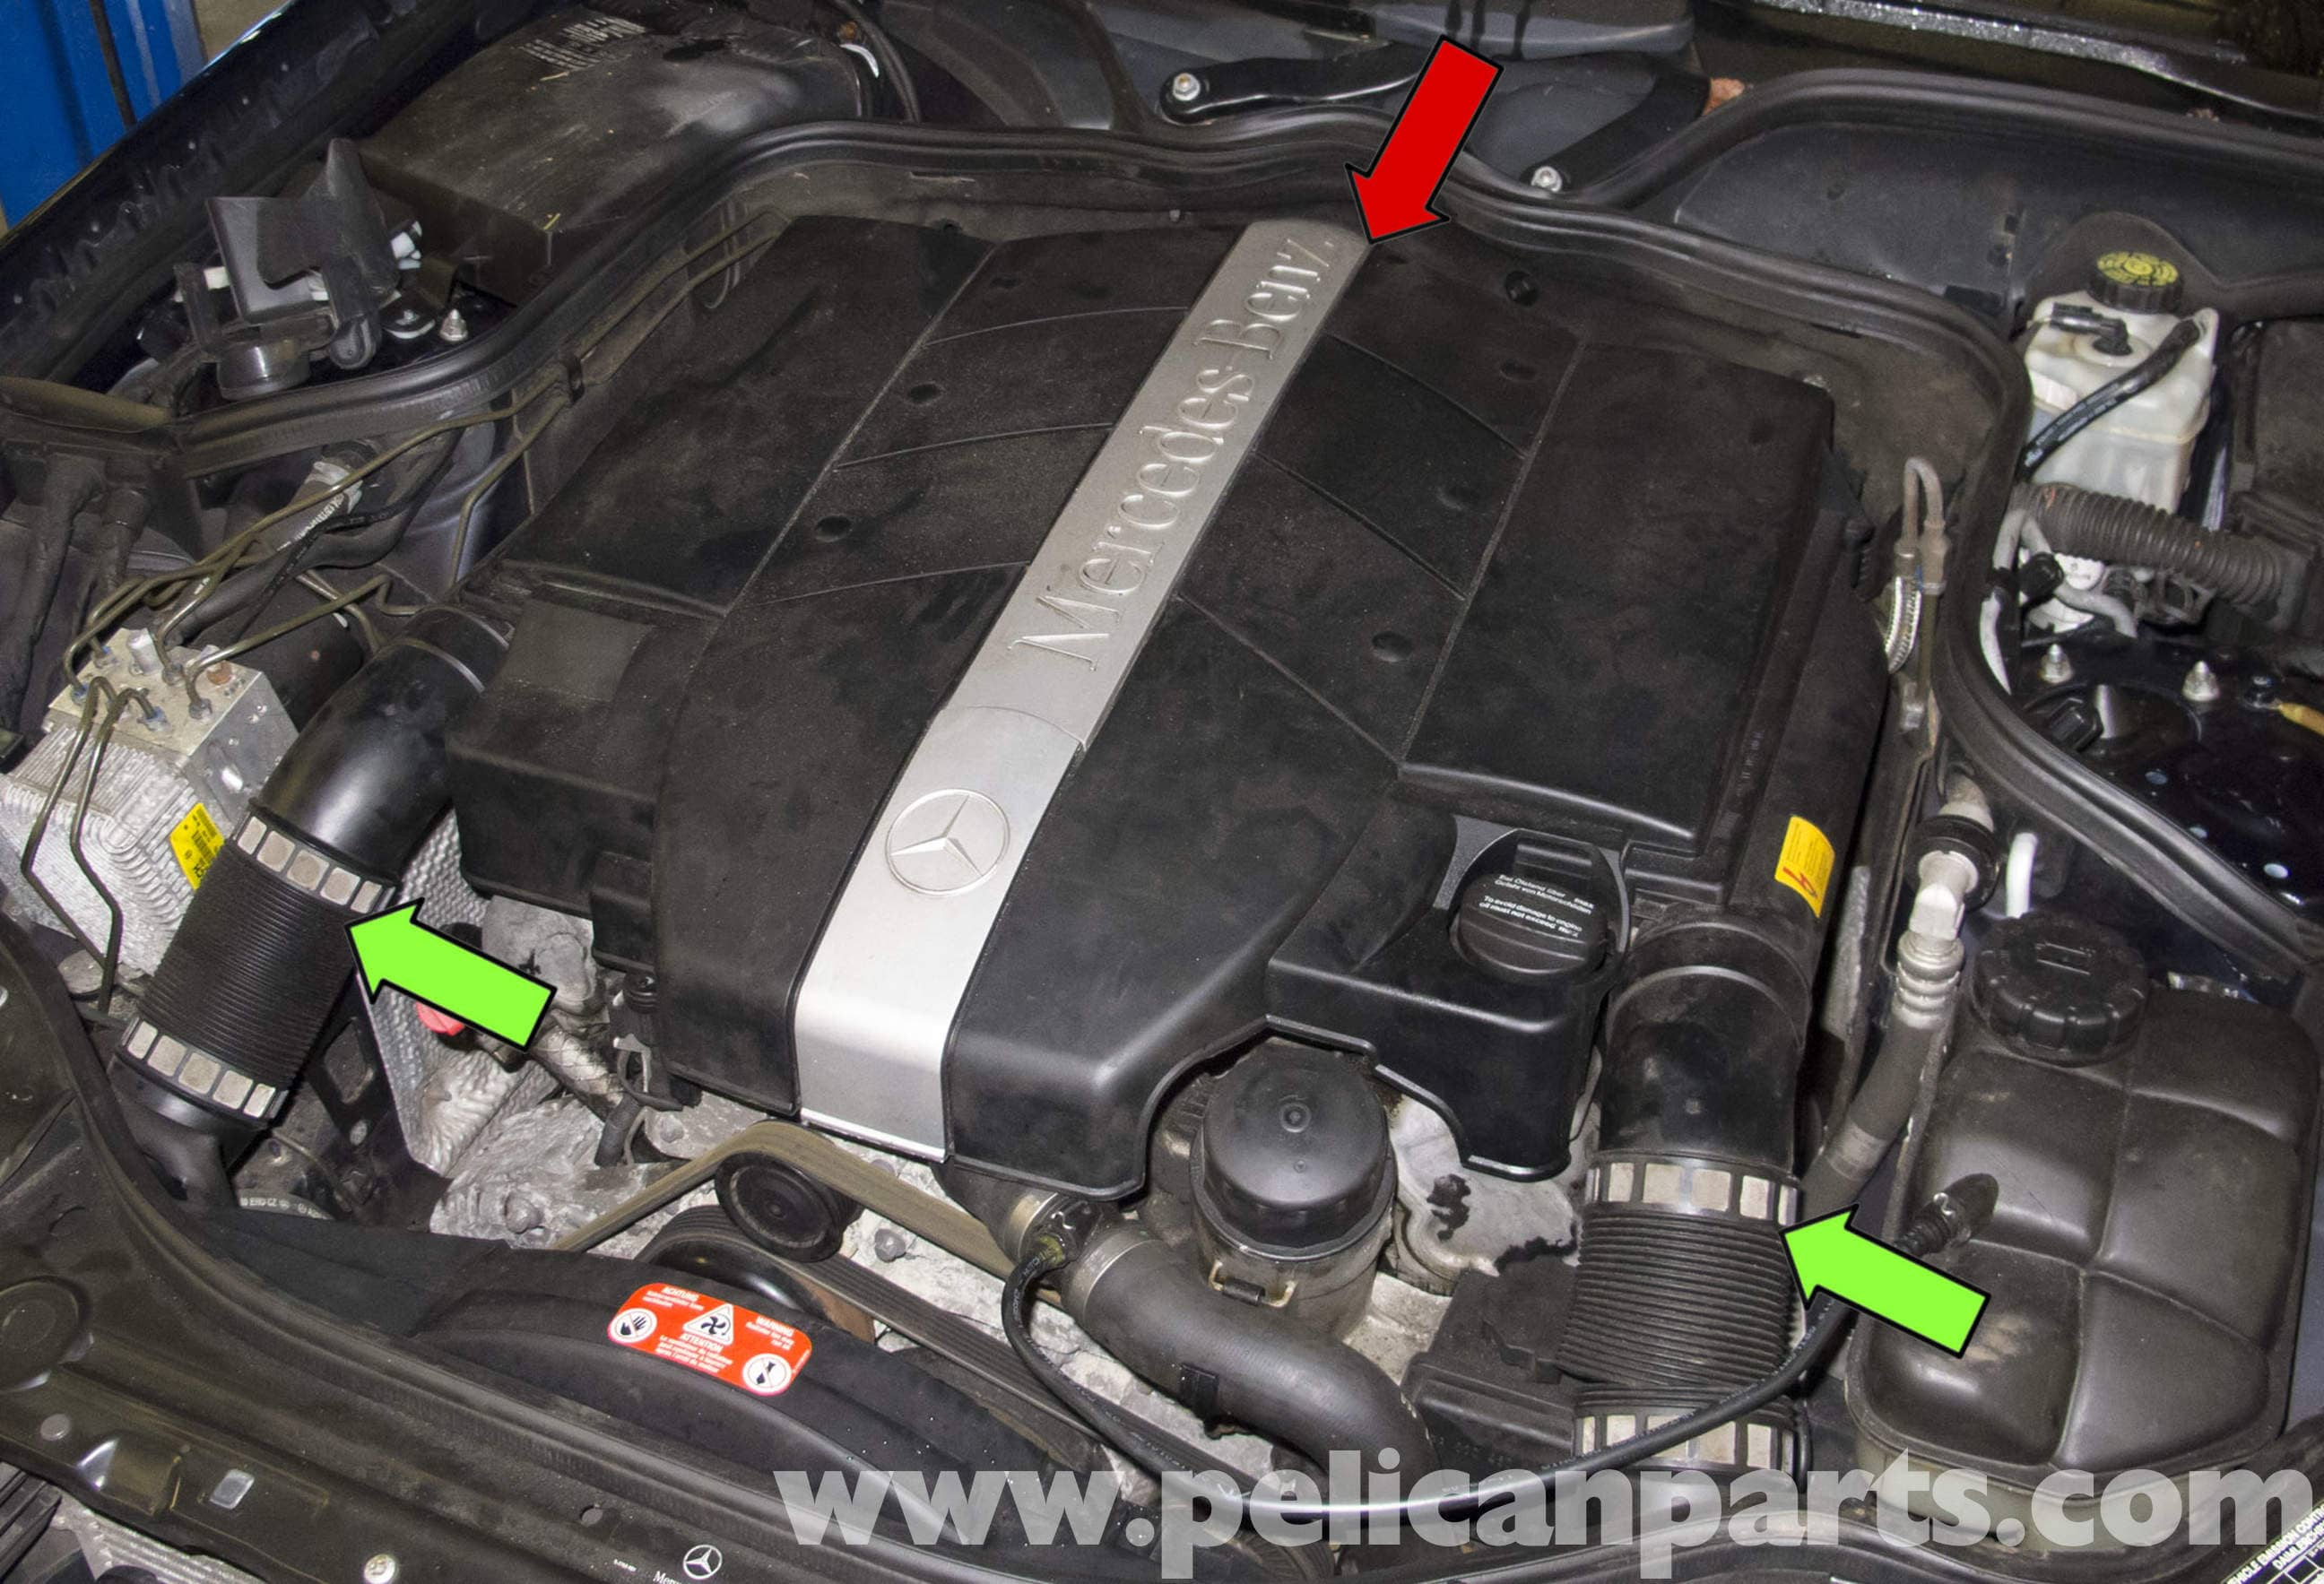 Mercedes Benz W211 6 Cylinder Crankcase Breather Hoses Cover Bmw 2002 Engine Diagram Intake Large Image Extra